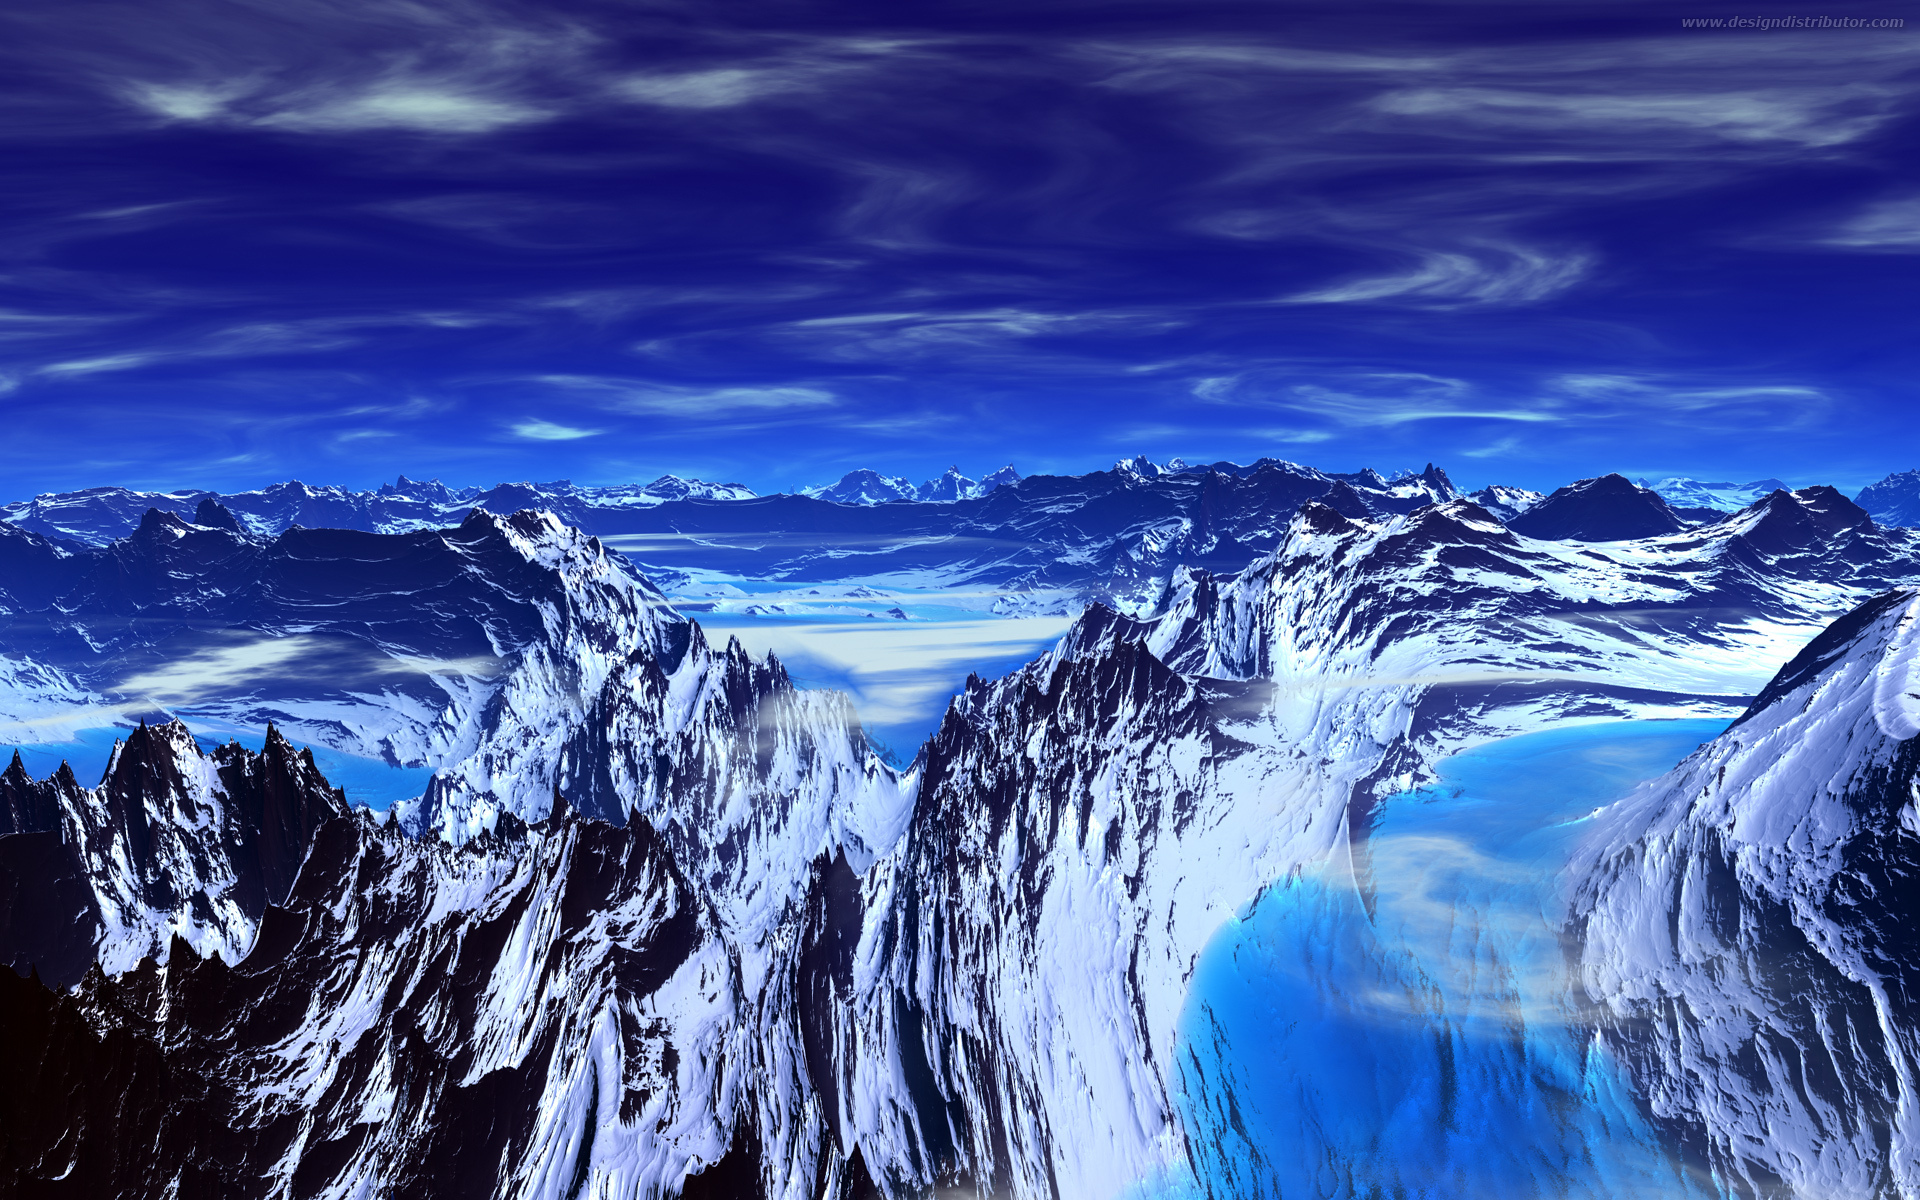 Download National Geographic Nature Full HD Wallpaper Download 1920x1200